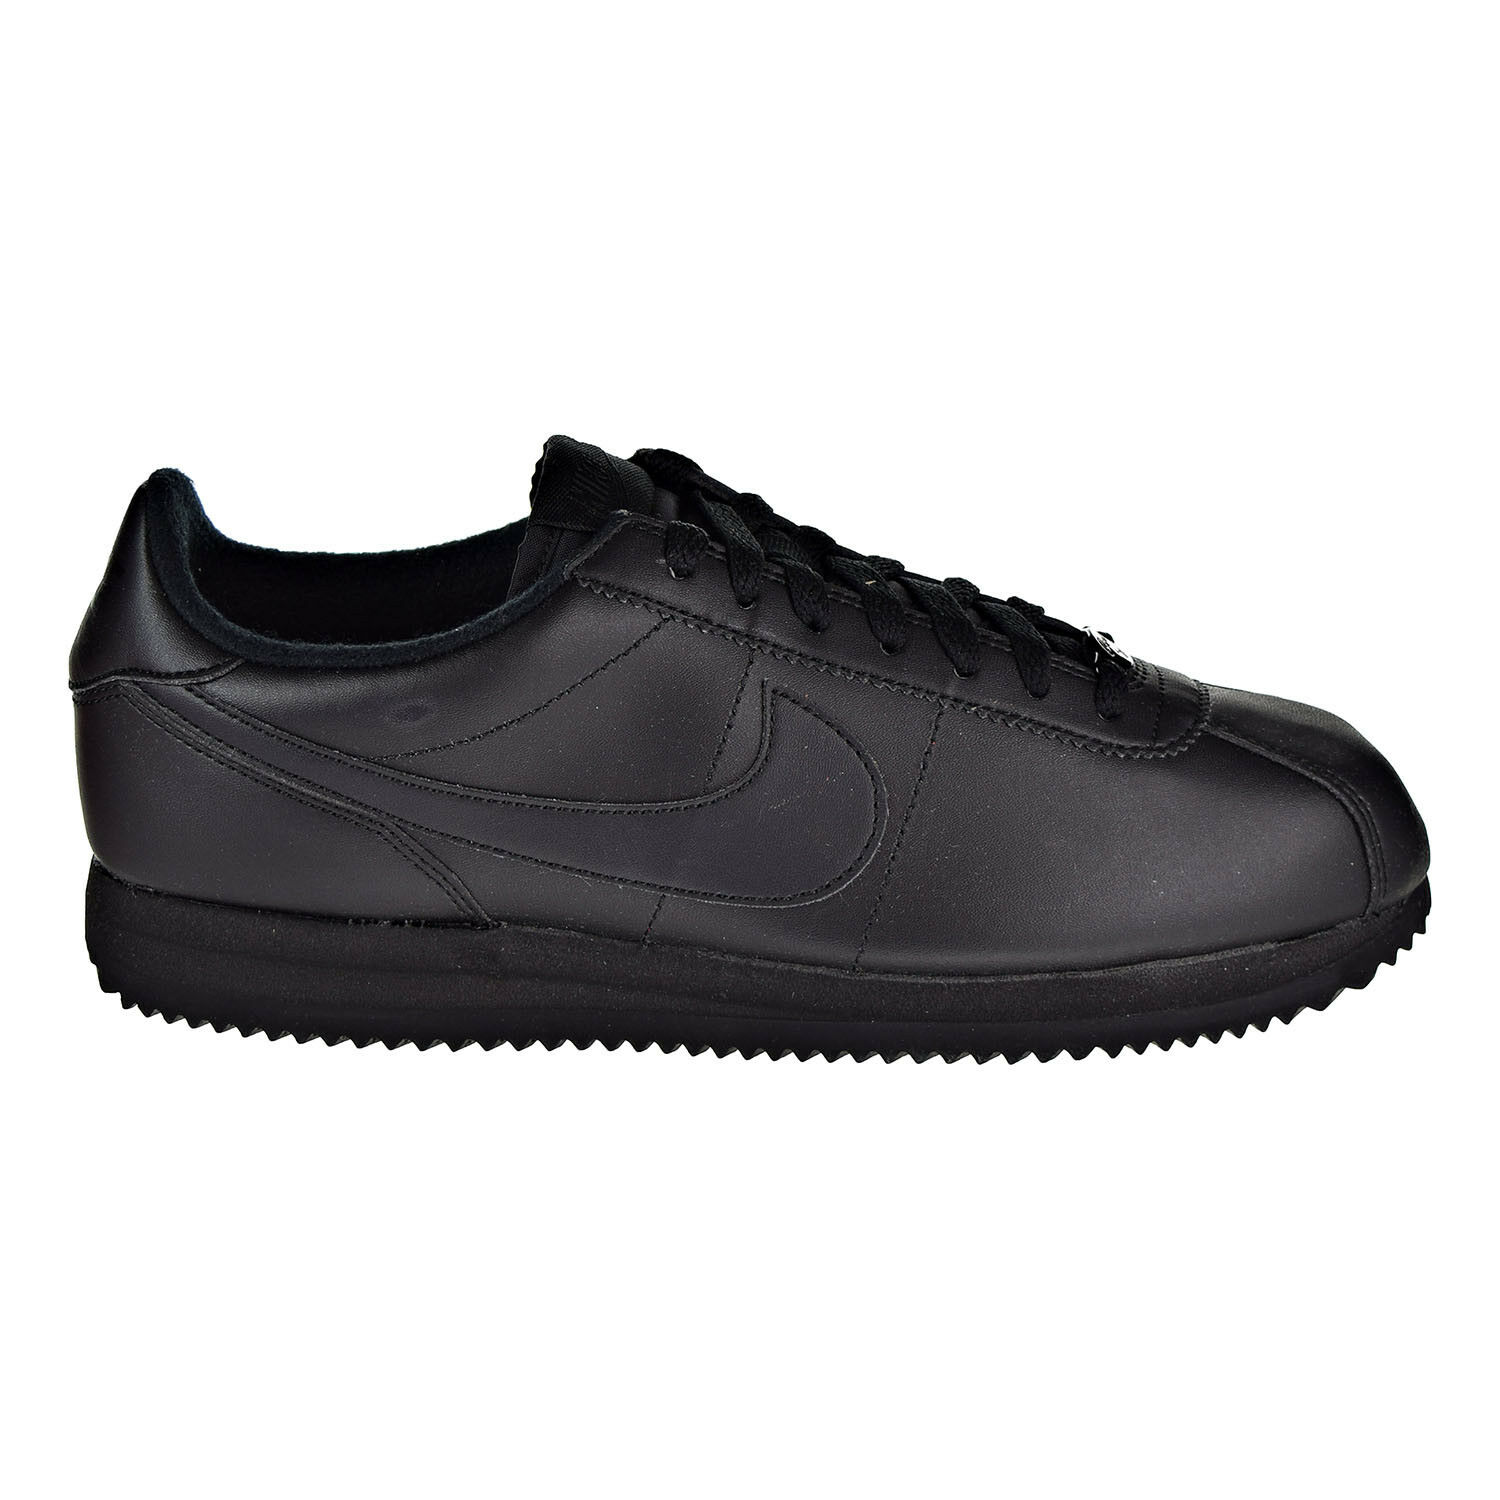 Nike Shoes Cortez Basic Leather Men's Shoes Nike Black/Black/Anthracite 819719-001 fff276